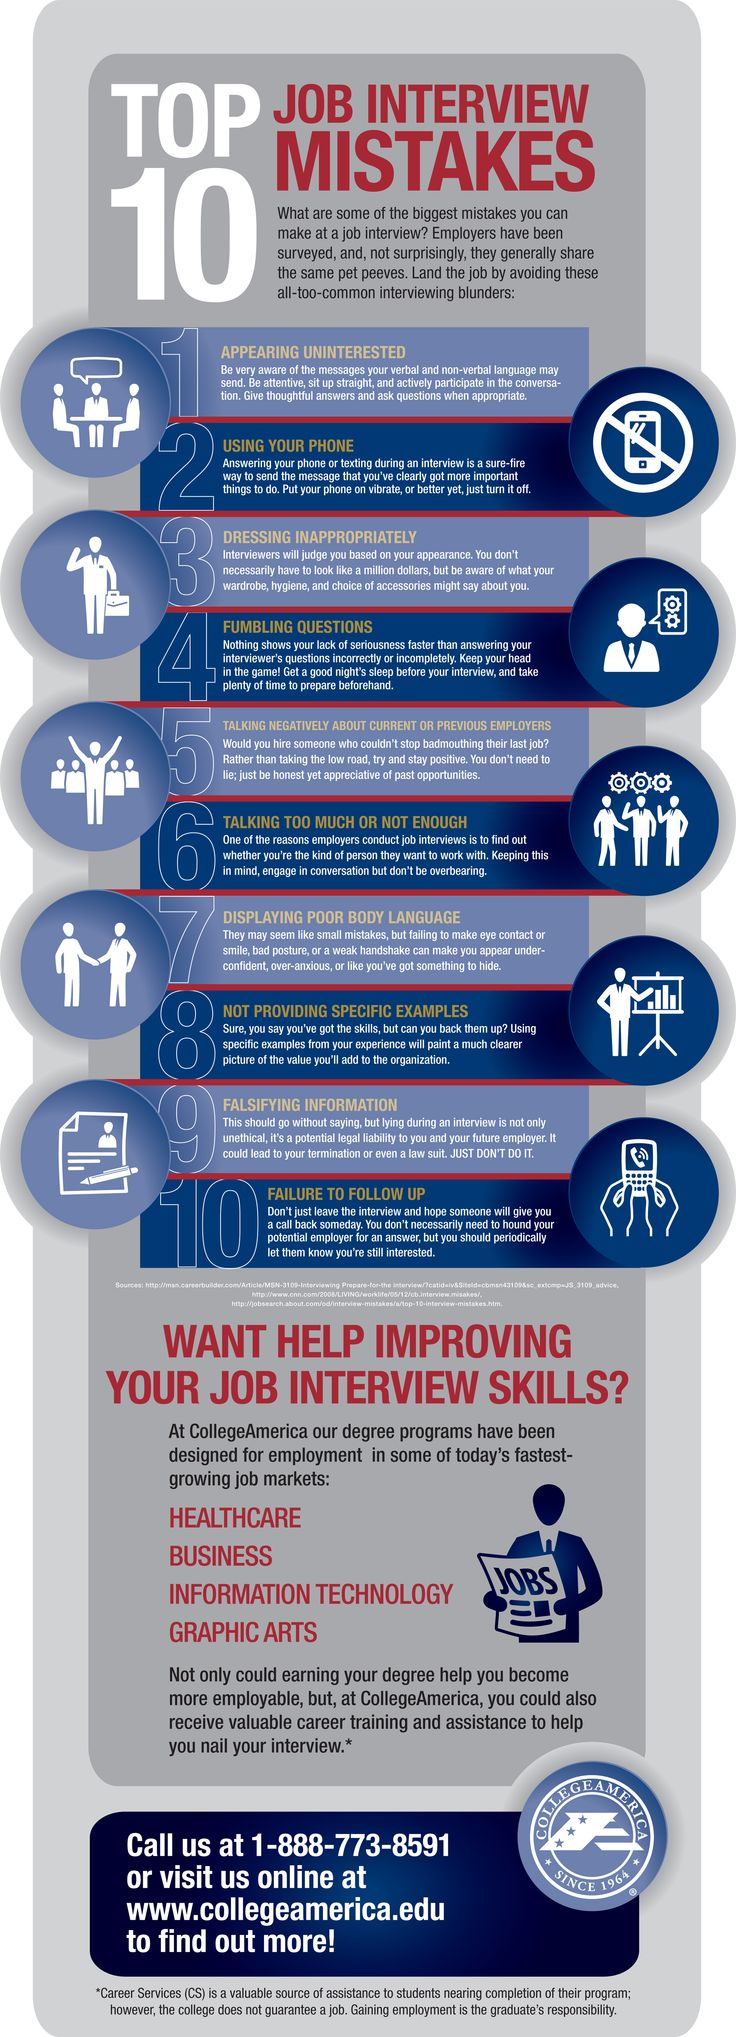 how to avoid the top 10 job interview mistakes infographic - How Long After An Interview Should You Hear Back Or Follow Up With A Call